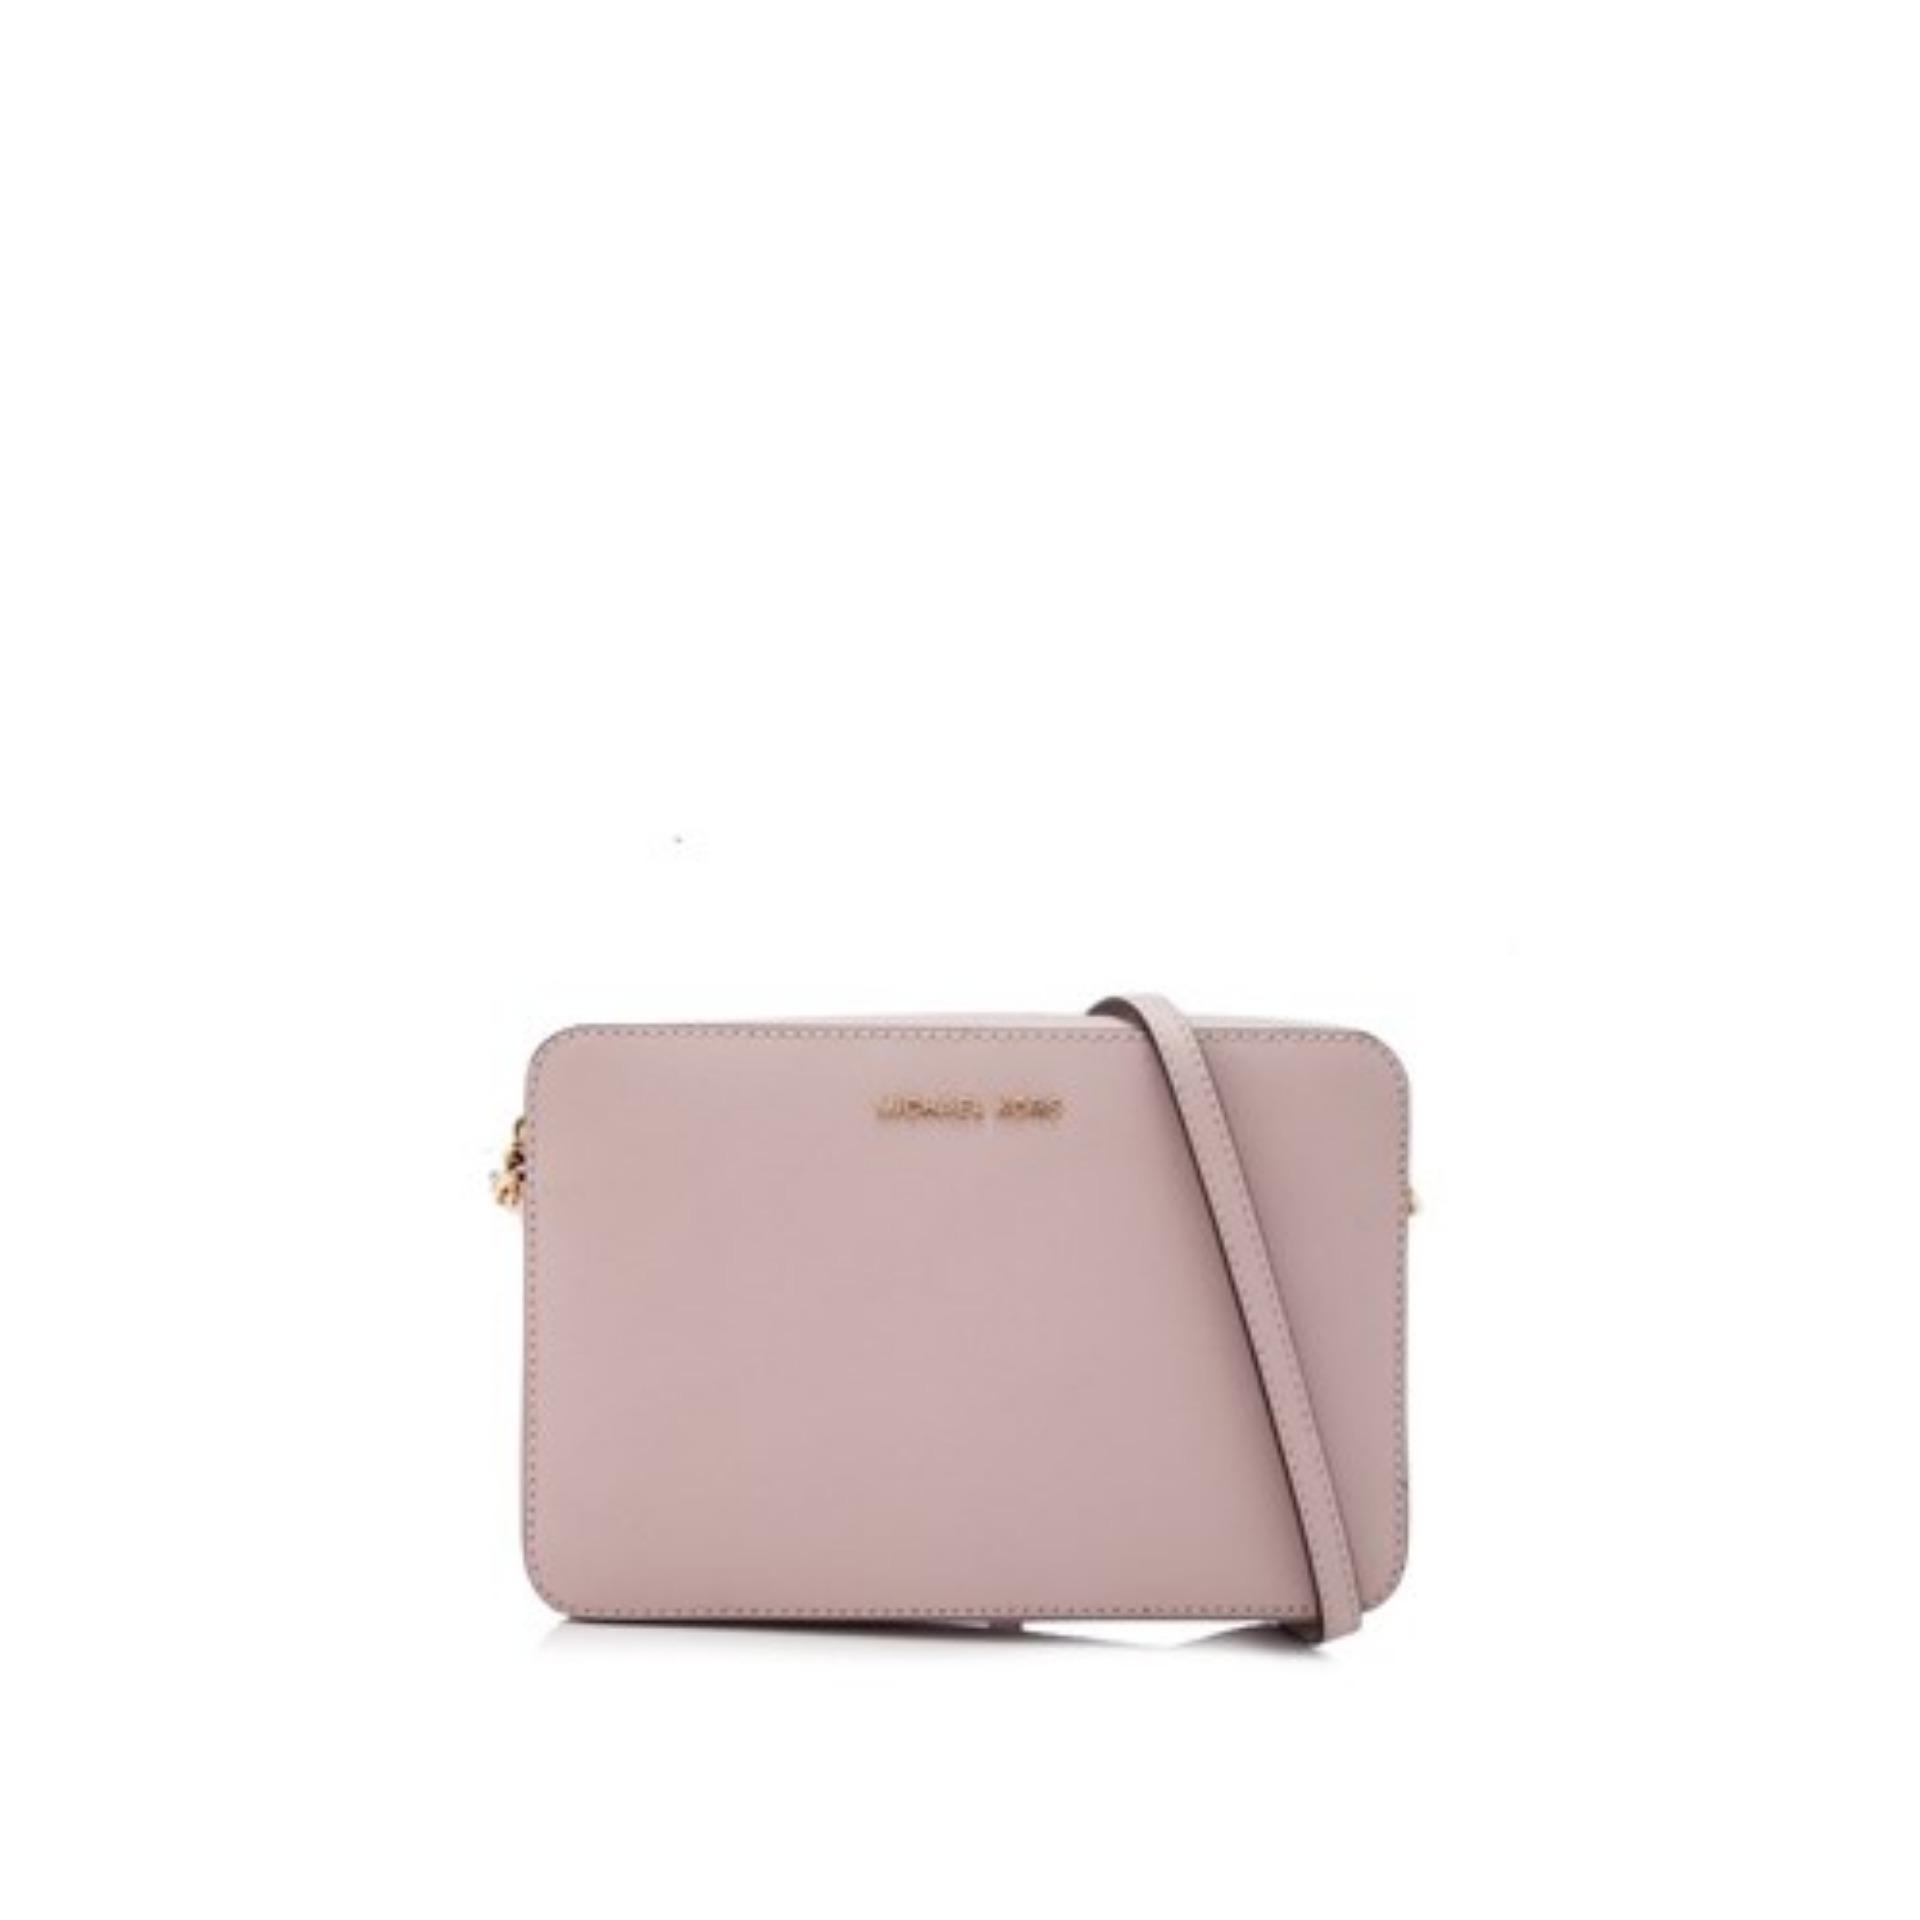 1344eab6ef96b5 Michael Kors Jet Set East West Large Crossbody Bag (Soft Pink) #  32S4GTVC3LSOFTPINK